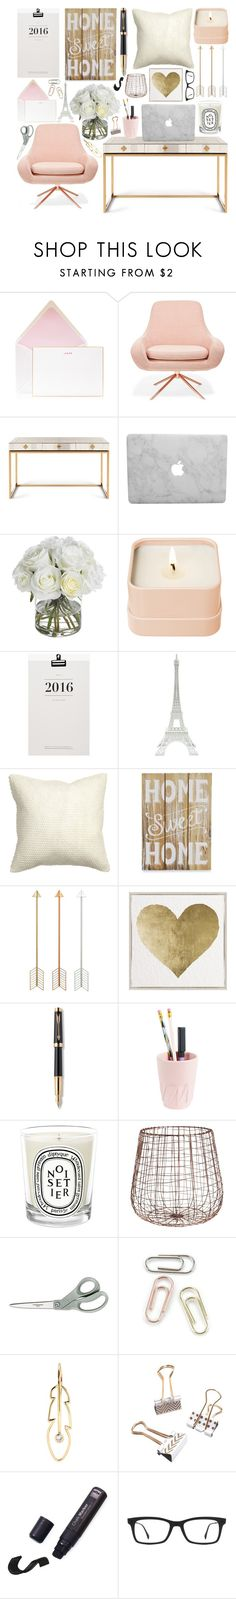 """Pink, White, and Metallics Home Office Inspiration"" by jessica-hearts ❤ liked on Polyvore featuring interior, interiors, interior design, home, home decor, interior decorating, Bell'Invito, Jonathan Adler, Diane James and Henri Bendel"